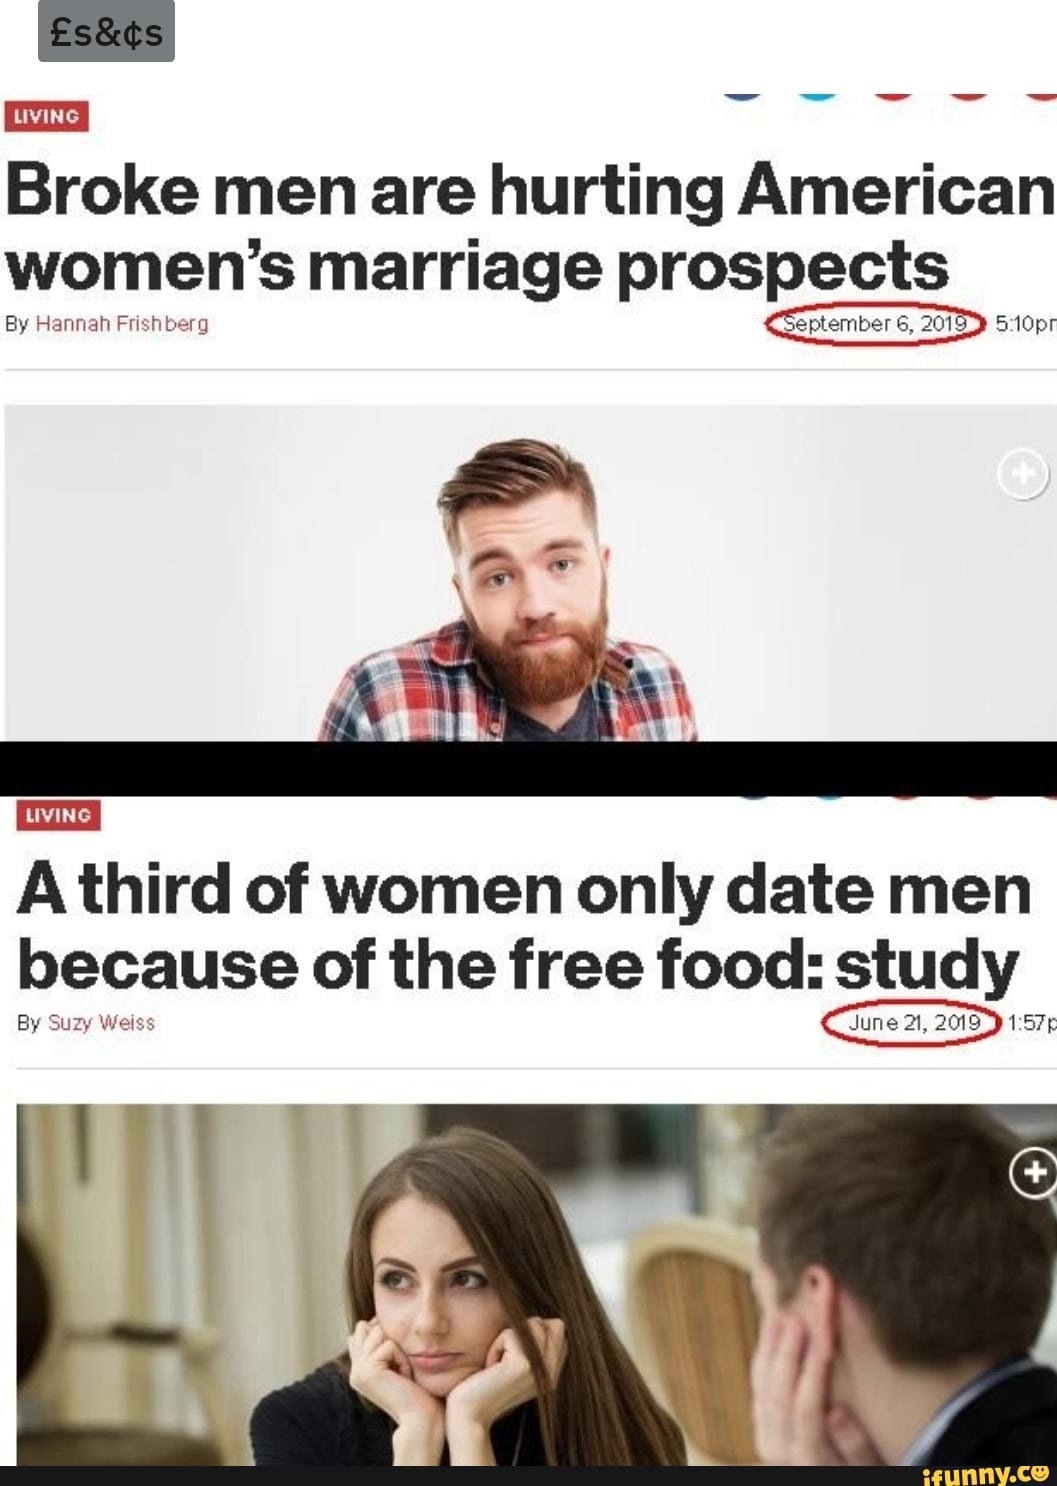 Broke Men Meme : broke, Broke, Hurting, American, Women's, Marriage, Prospects, Harman, Frhhb-erg, 510pr, Third, Women, Because, Food:, Study, IFunny